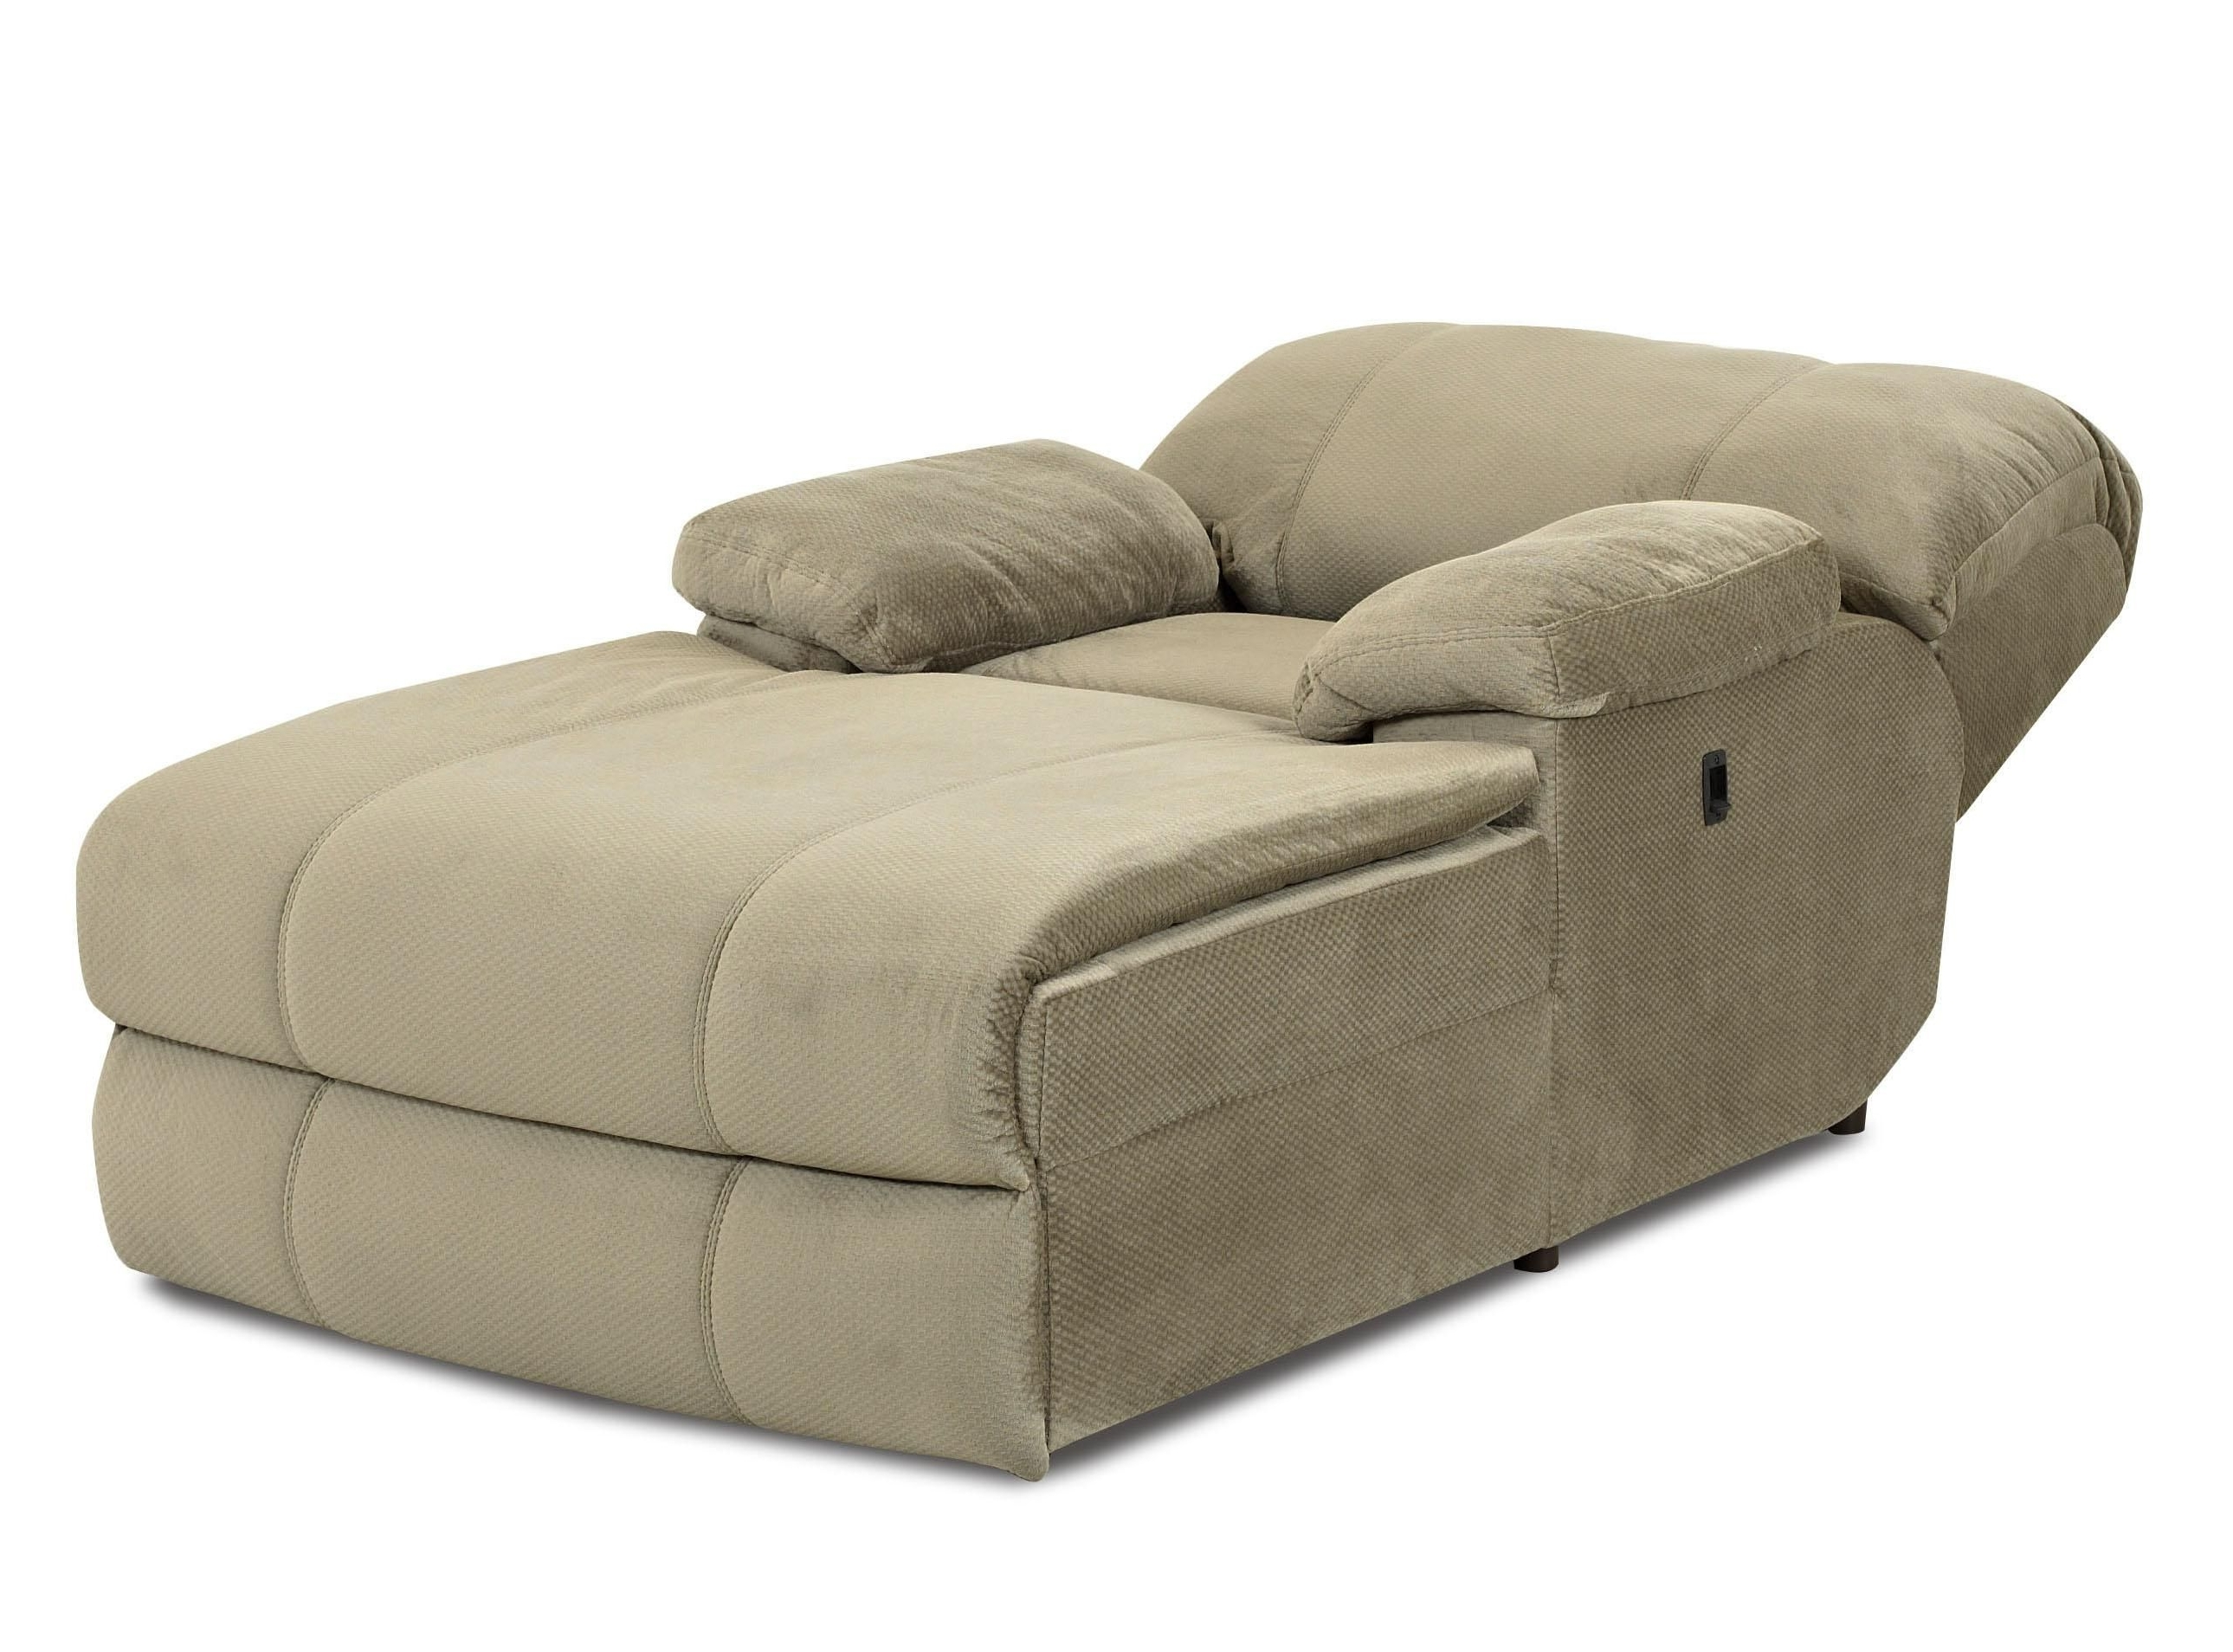 Kensington Reclining Chaise pertaining to Cheap Indoor Chaise Lounges